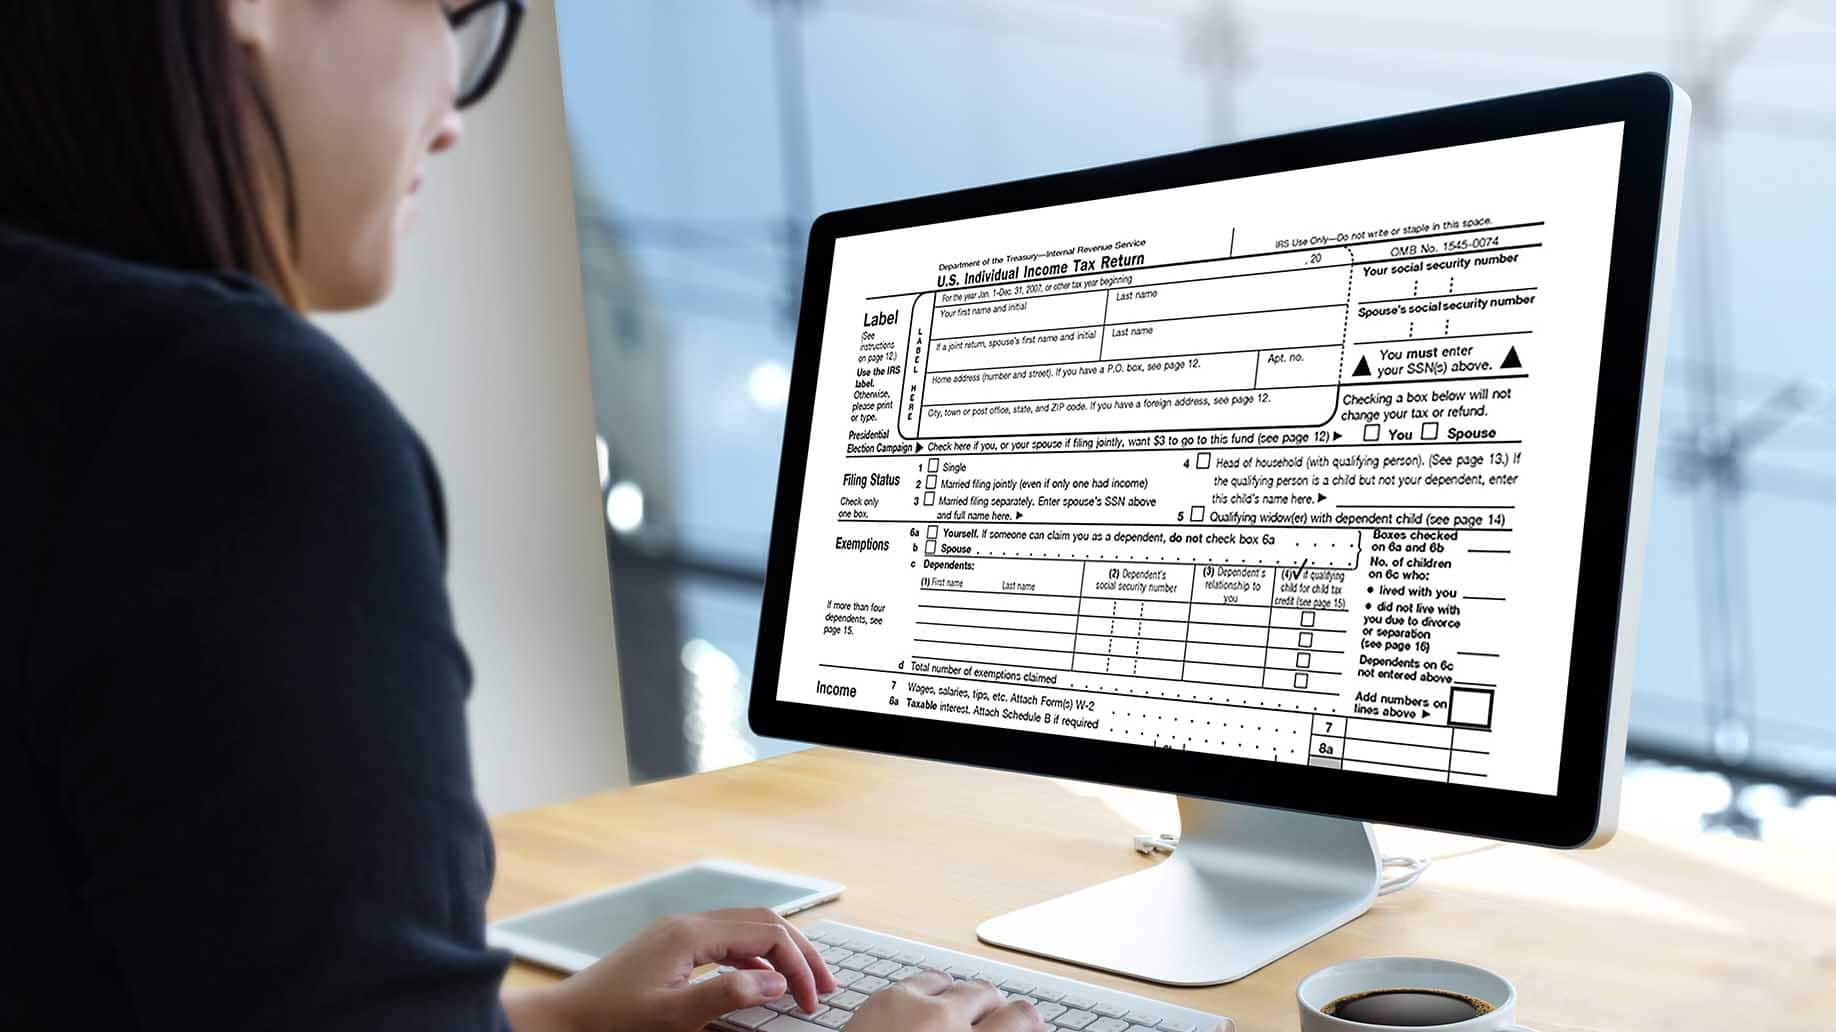 How To Set Up An Irs Tax Payment Plan 8 Steps To Consider